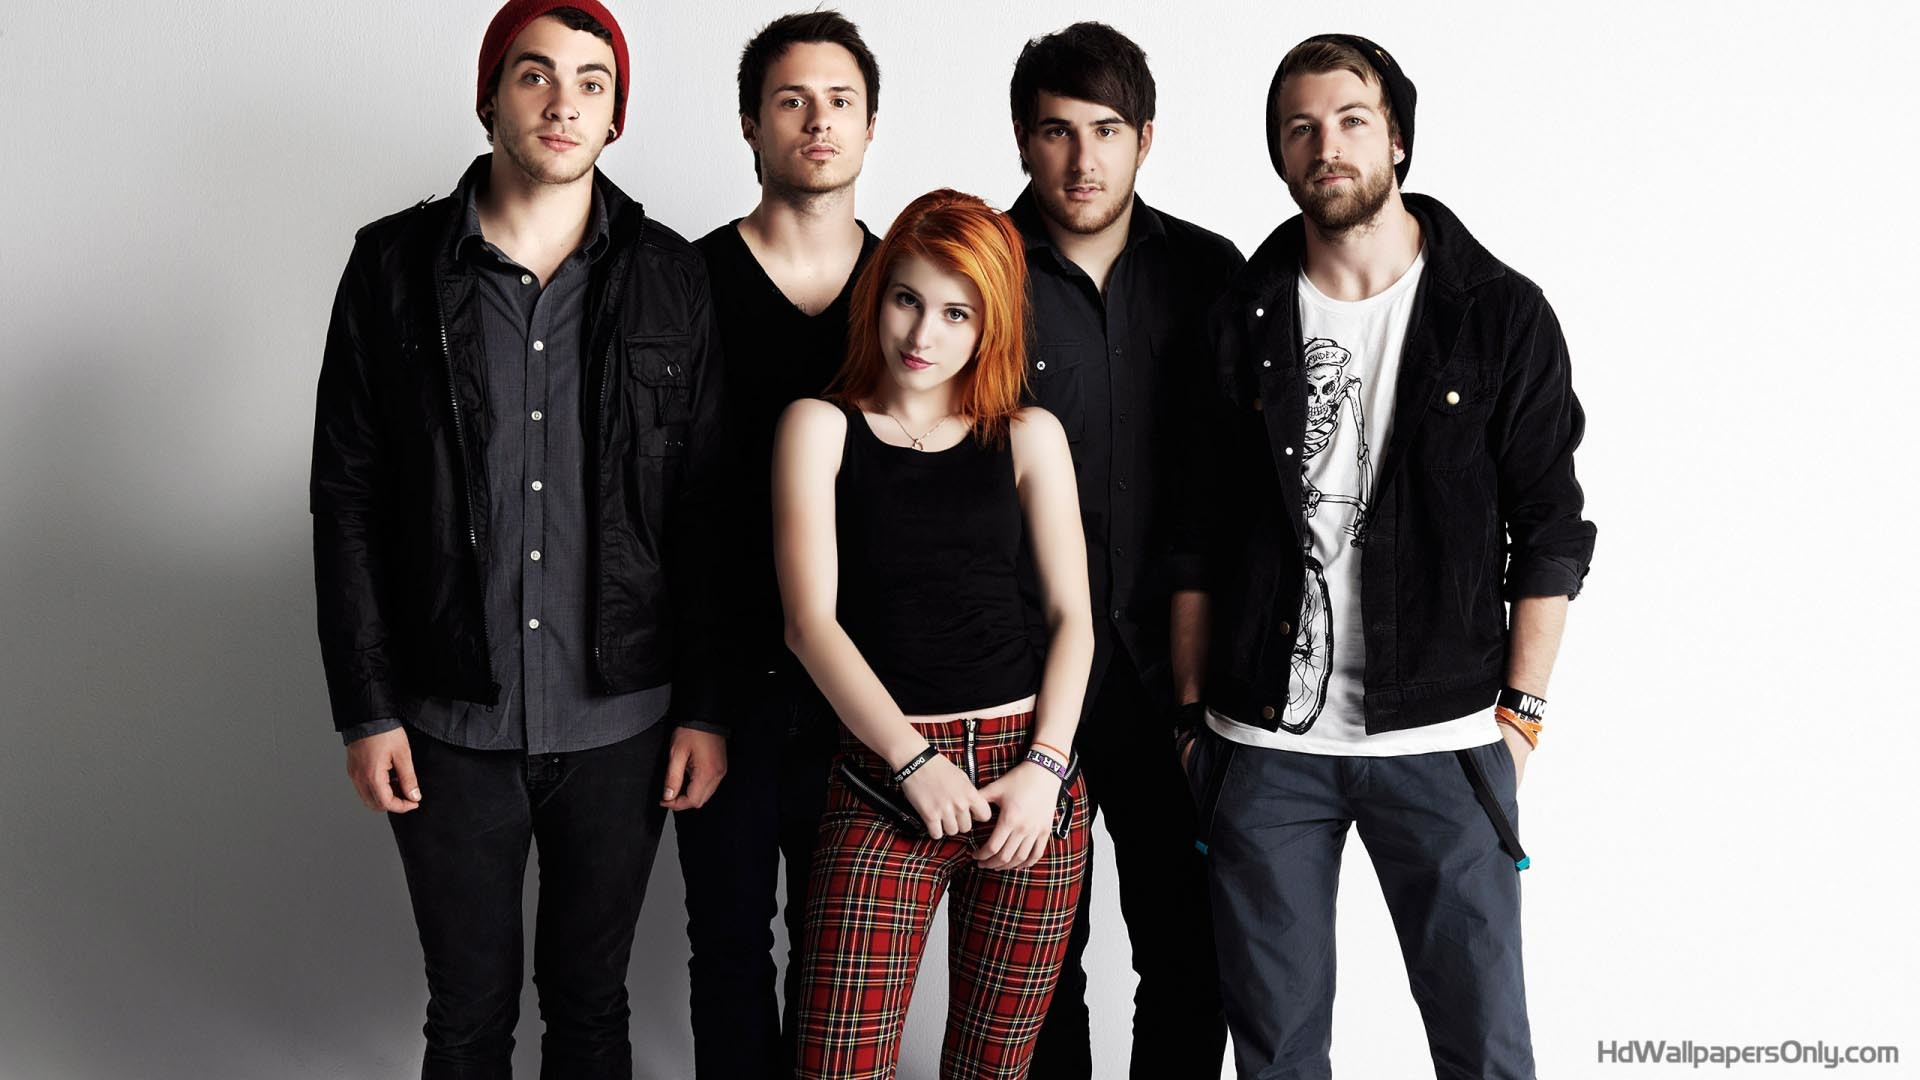 1920x1080 Paramore HD Wallpapers Collection - HD Wallpapers OnlyHD .